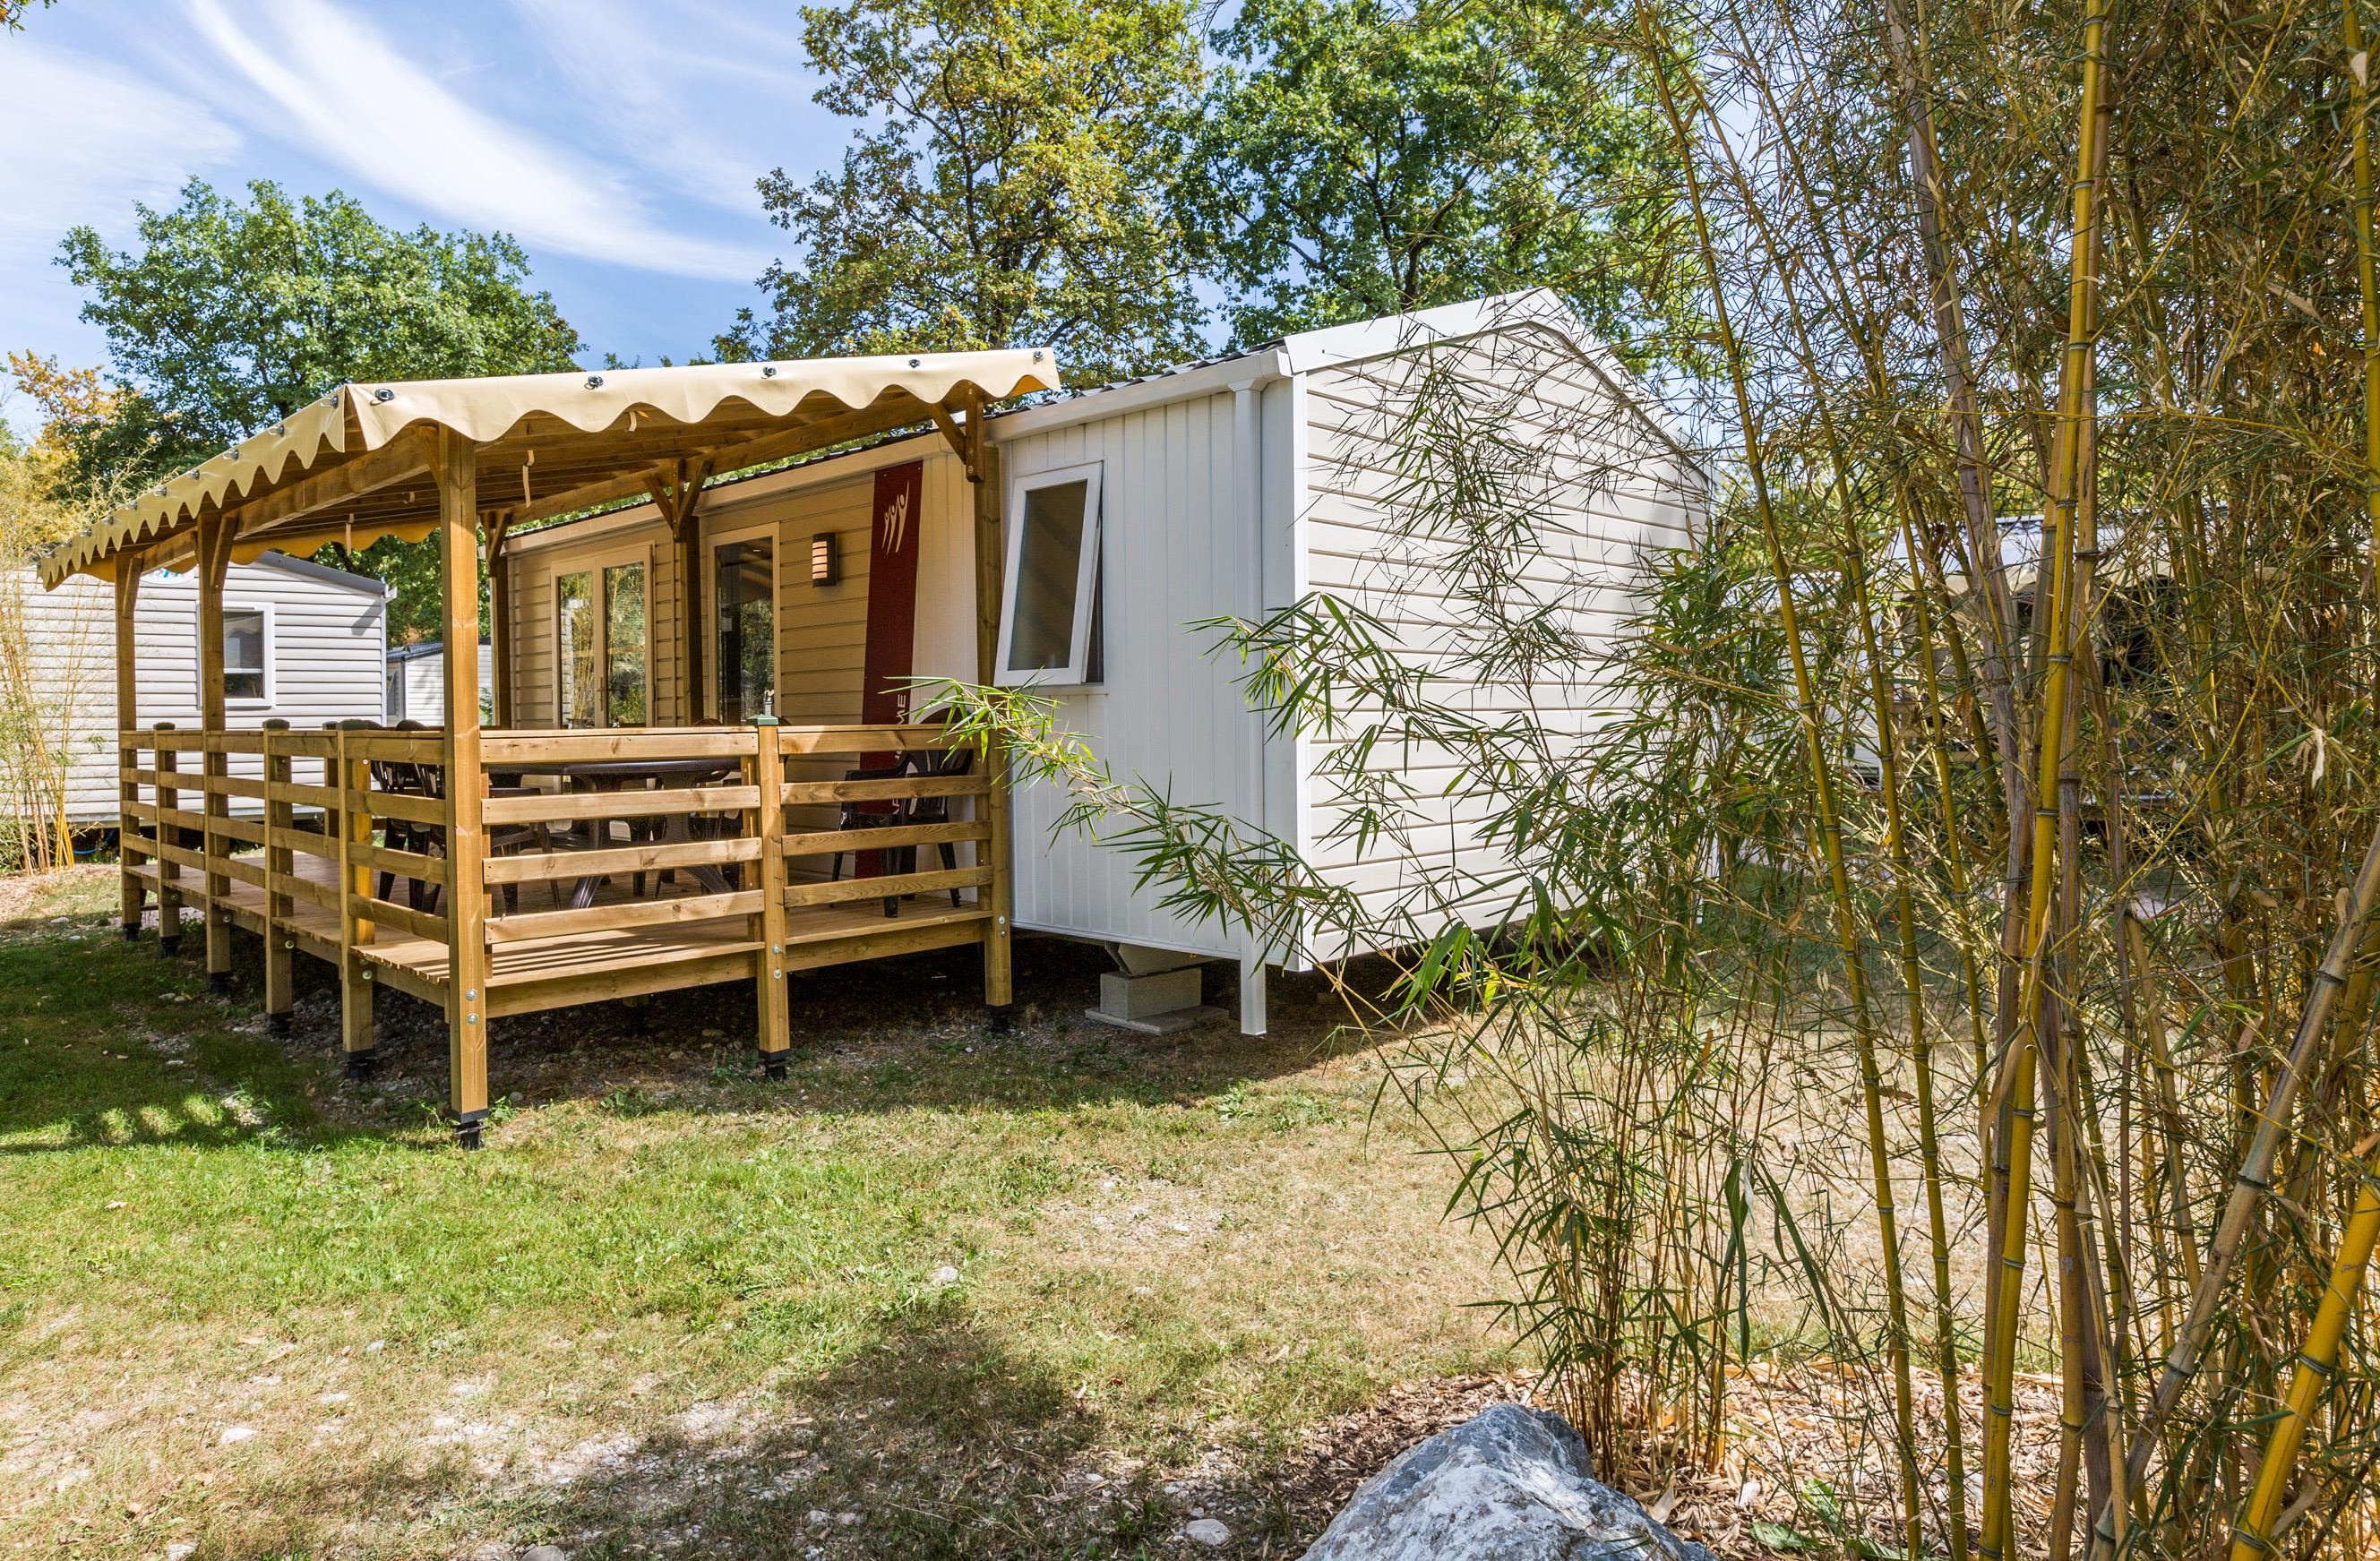 Location - Mobilhome Savoie 31M² - Terrasse Couverte 15M² (2 Chambres) - Camping Saint-Disdille